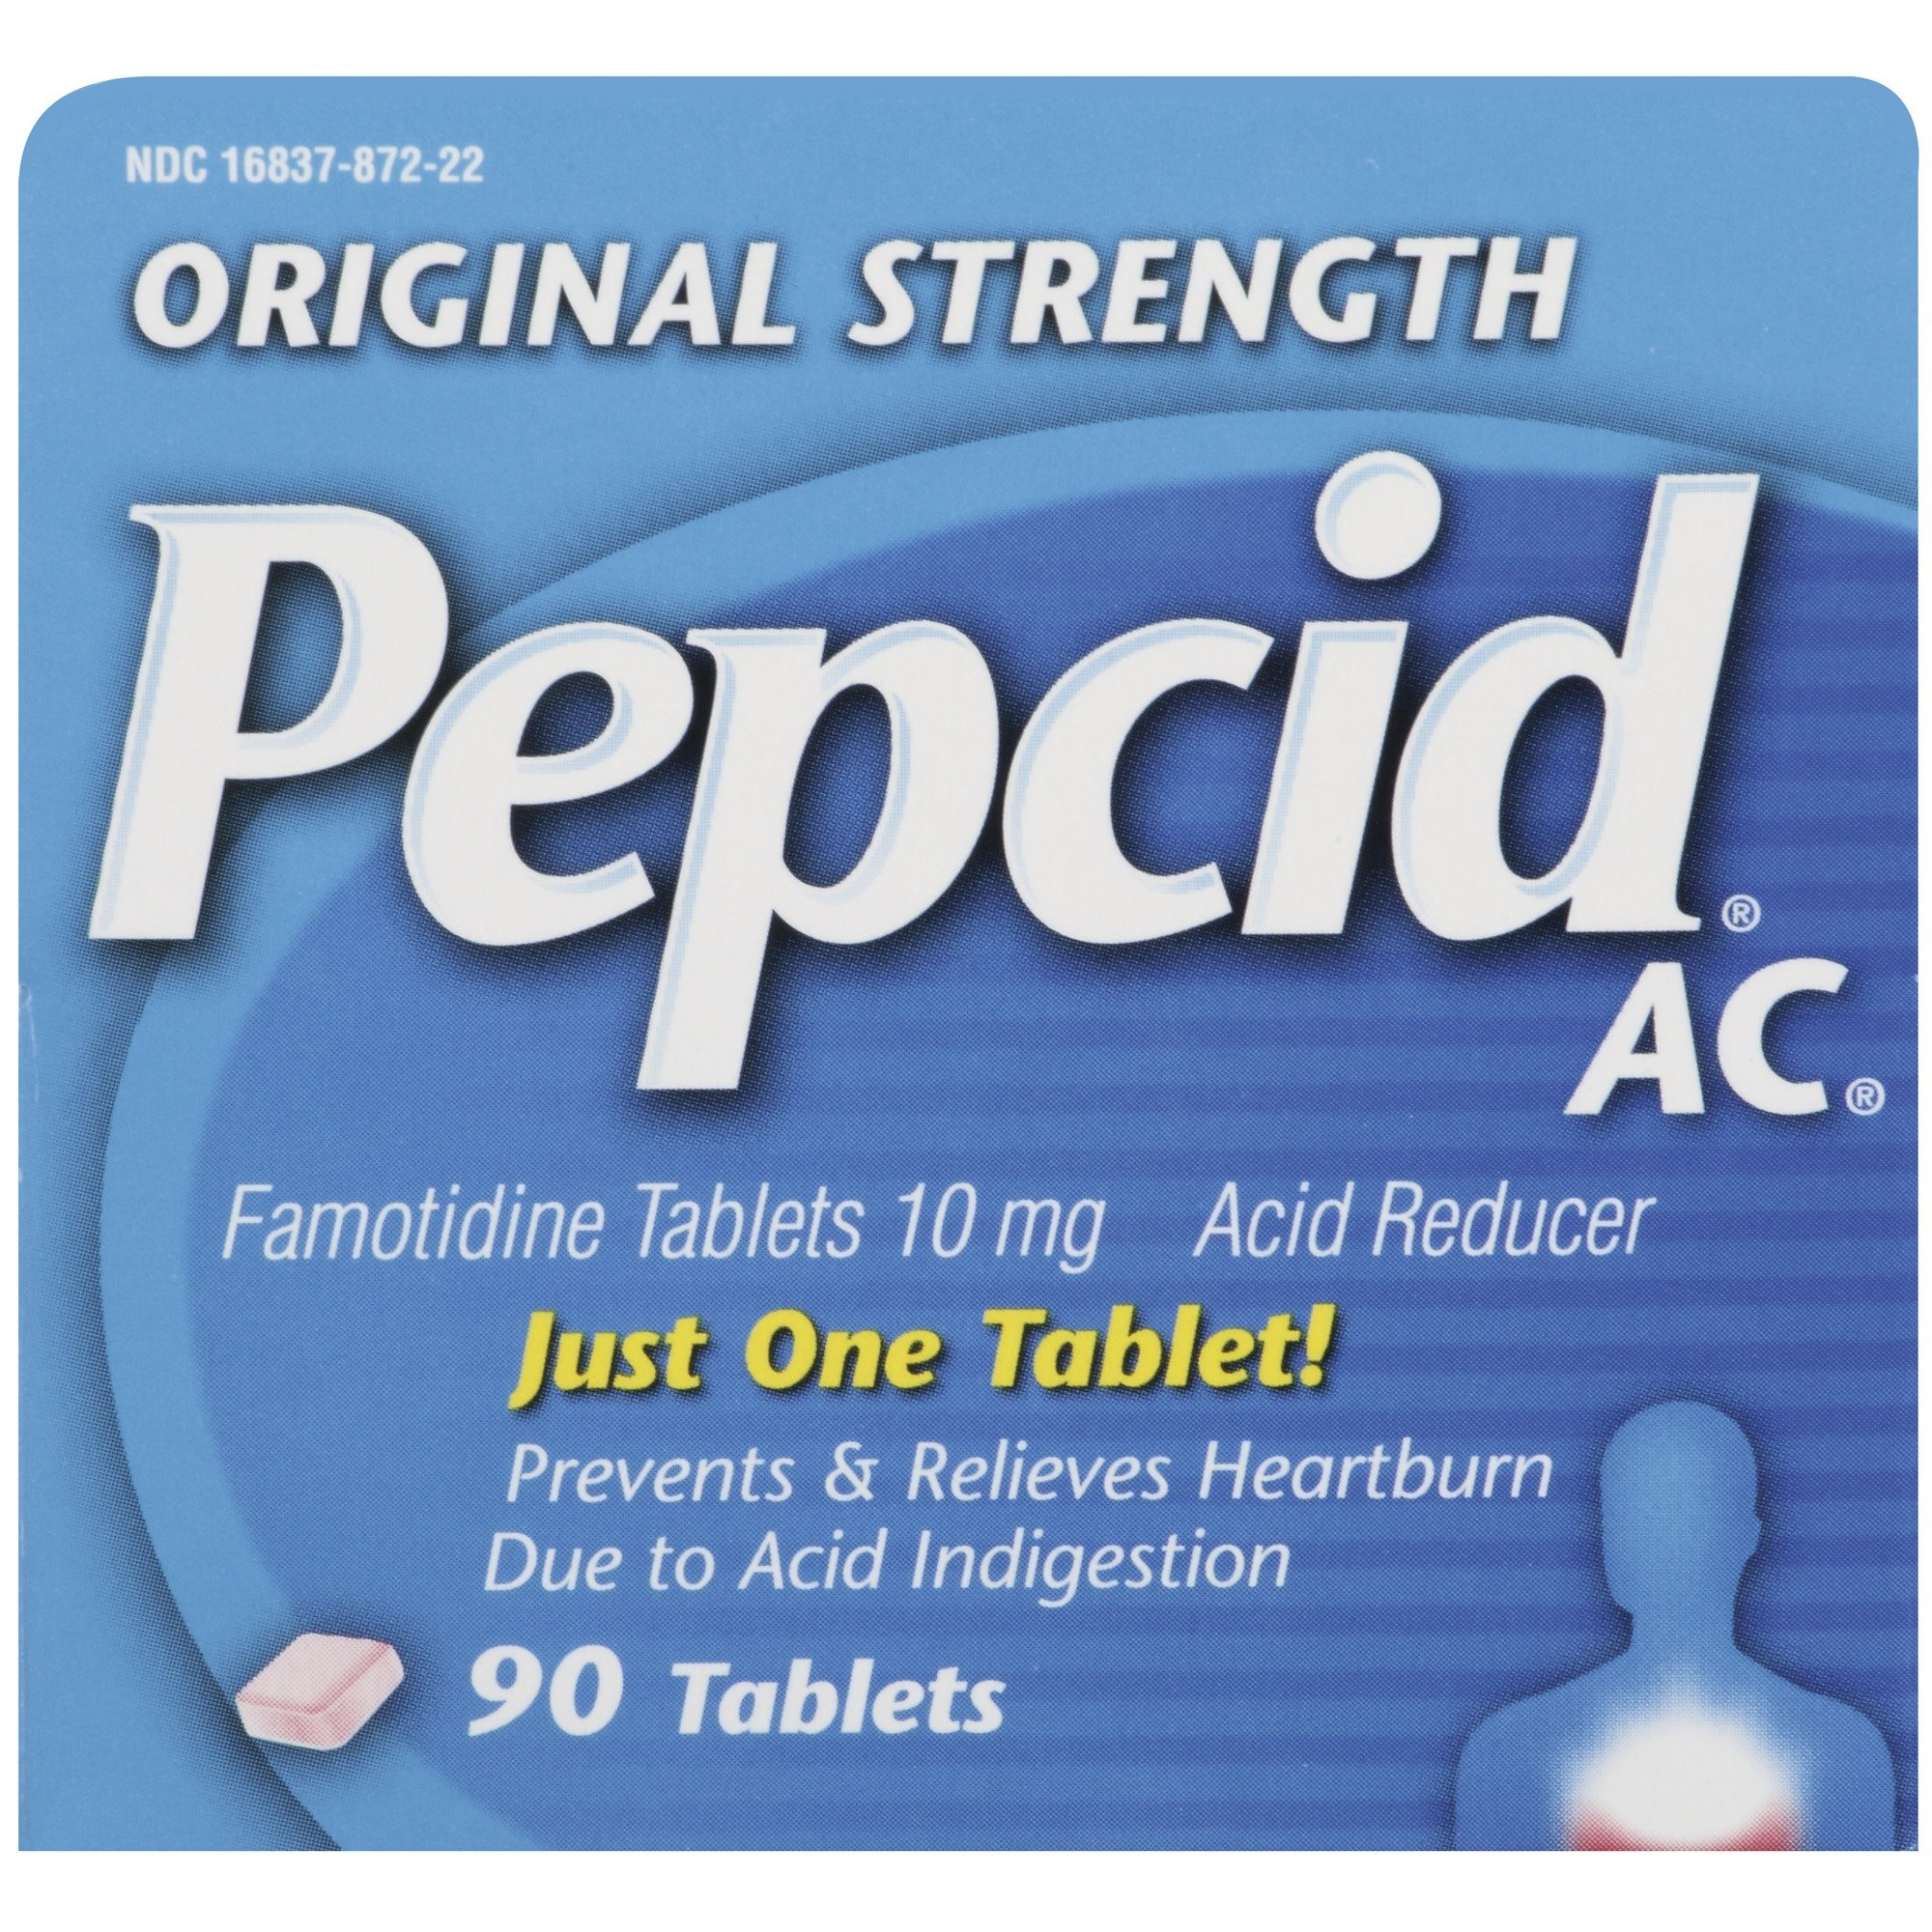 Original Strength Pepcid AC All-Day Heartburn Indigestion Relief Tablets, 90 count by Pepcid